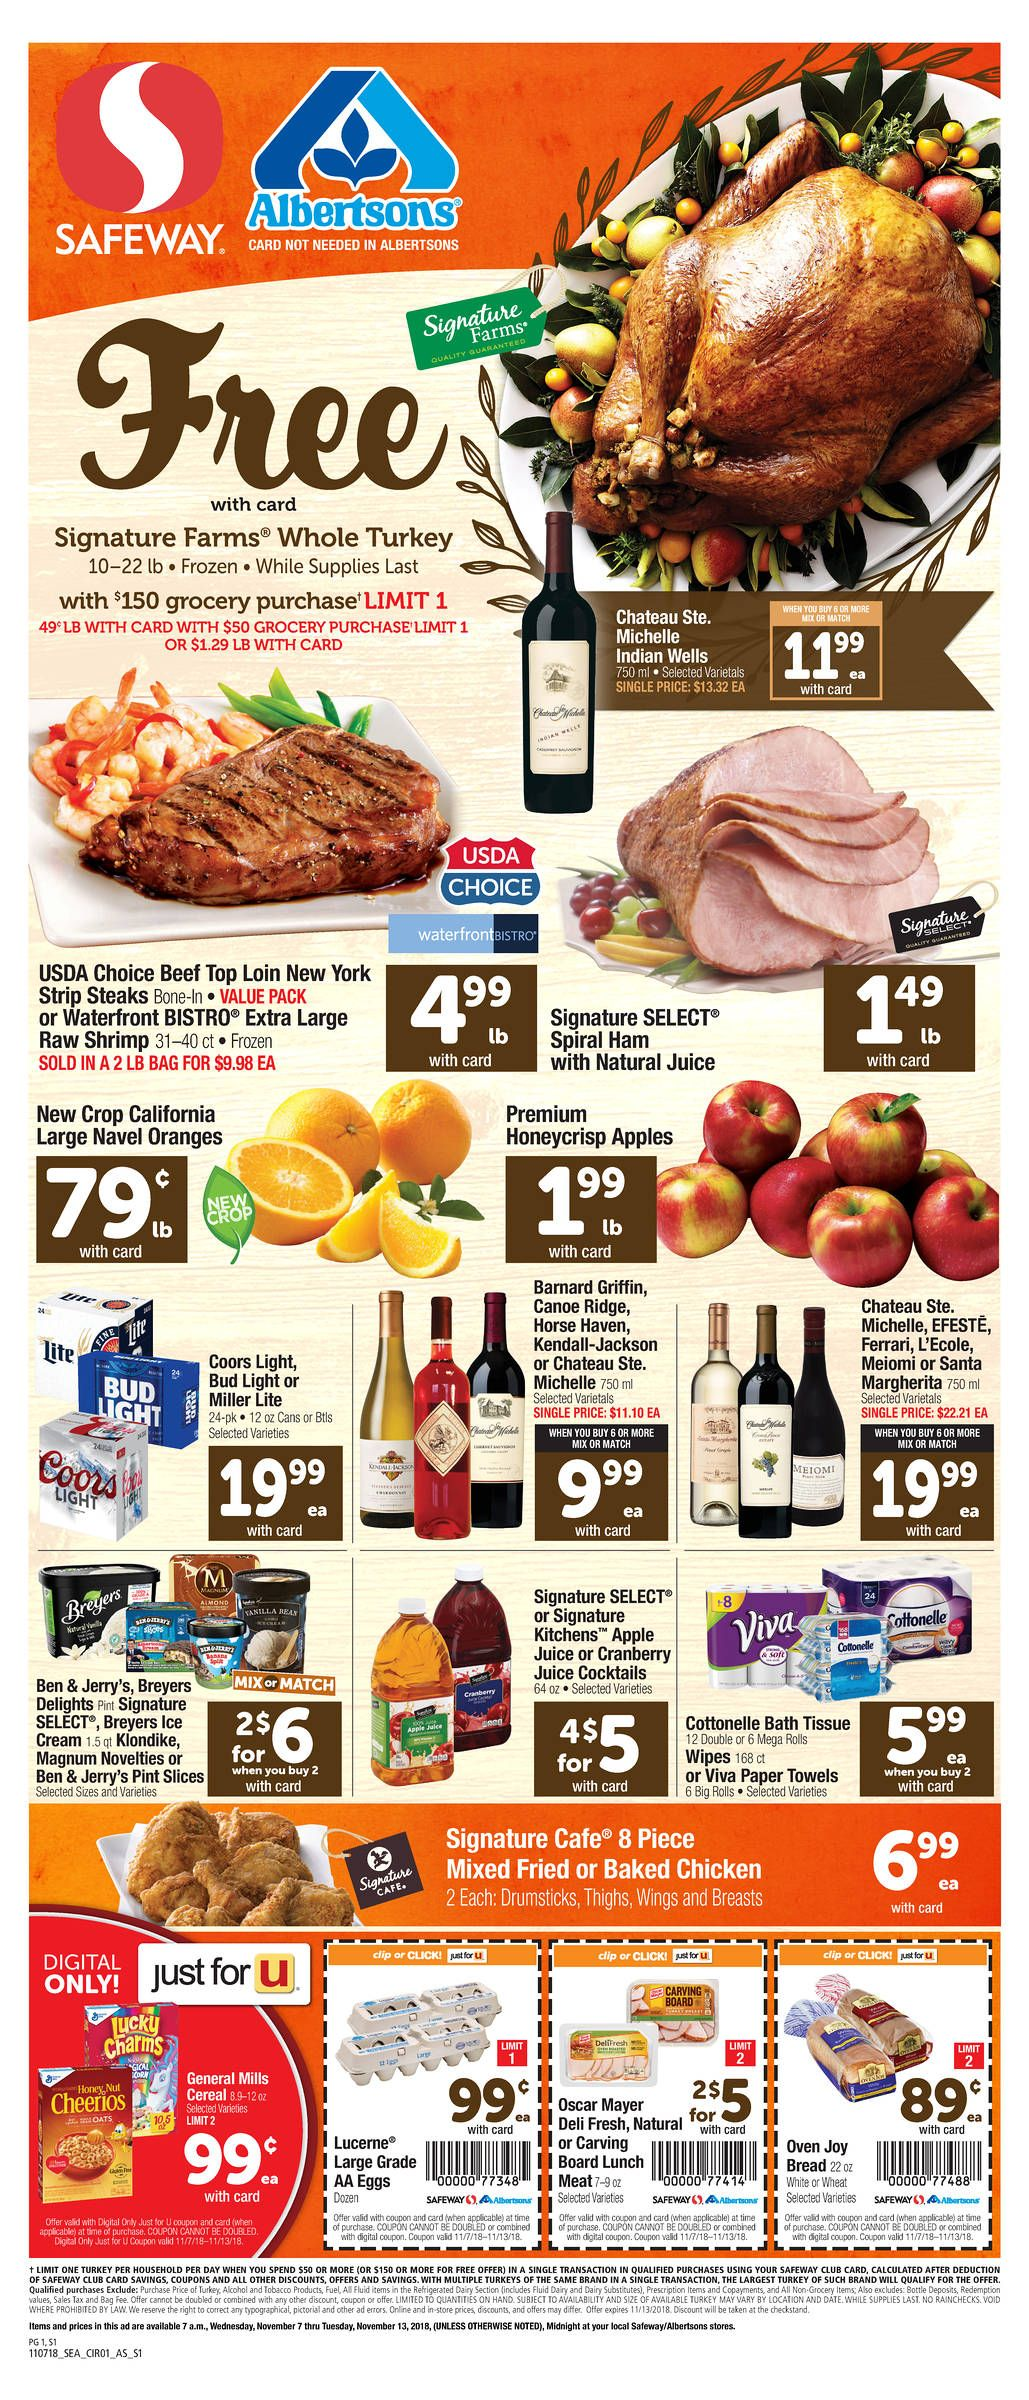 Free turkey at albertsons safeway with a 100 grocery